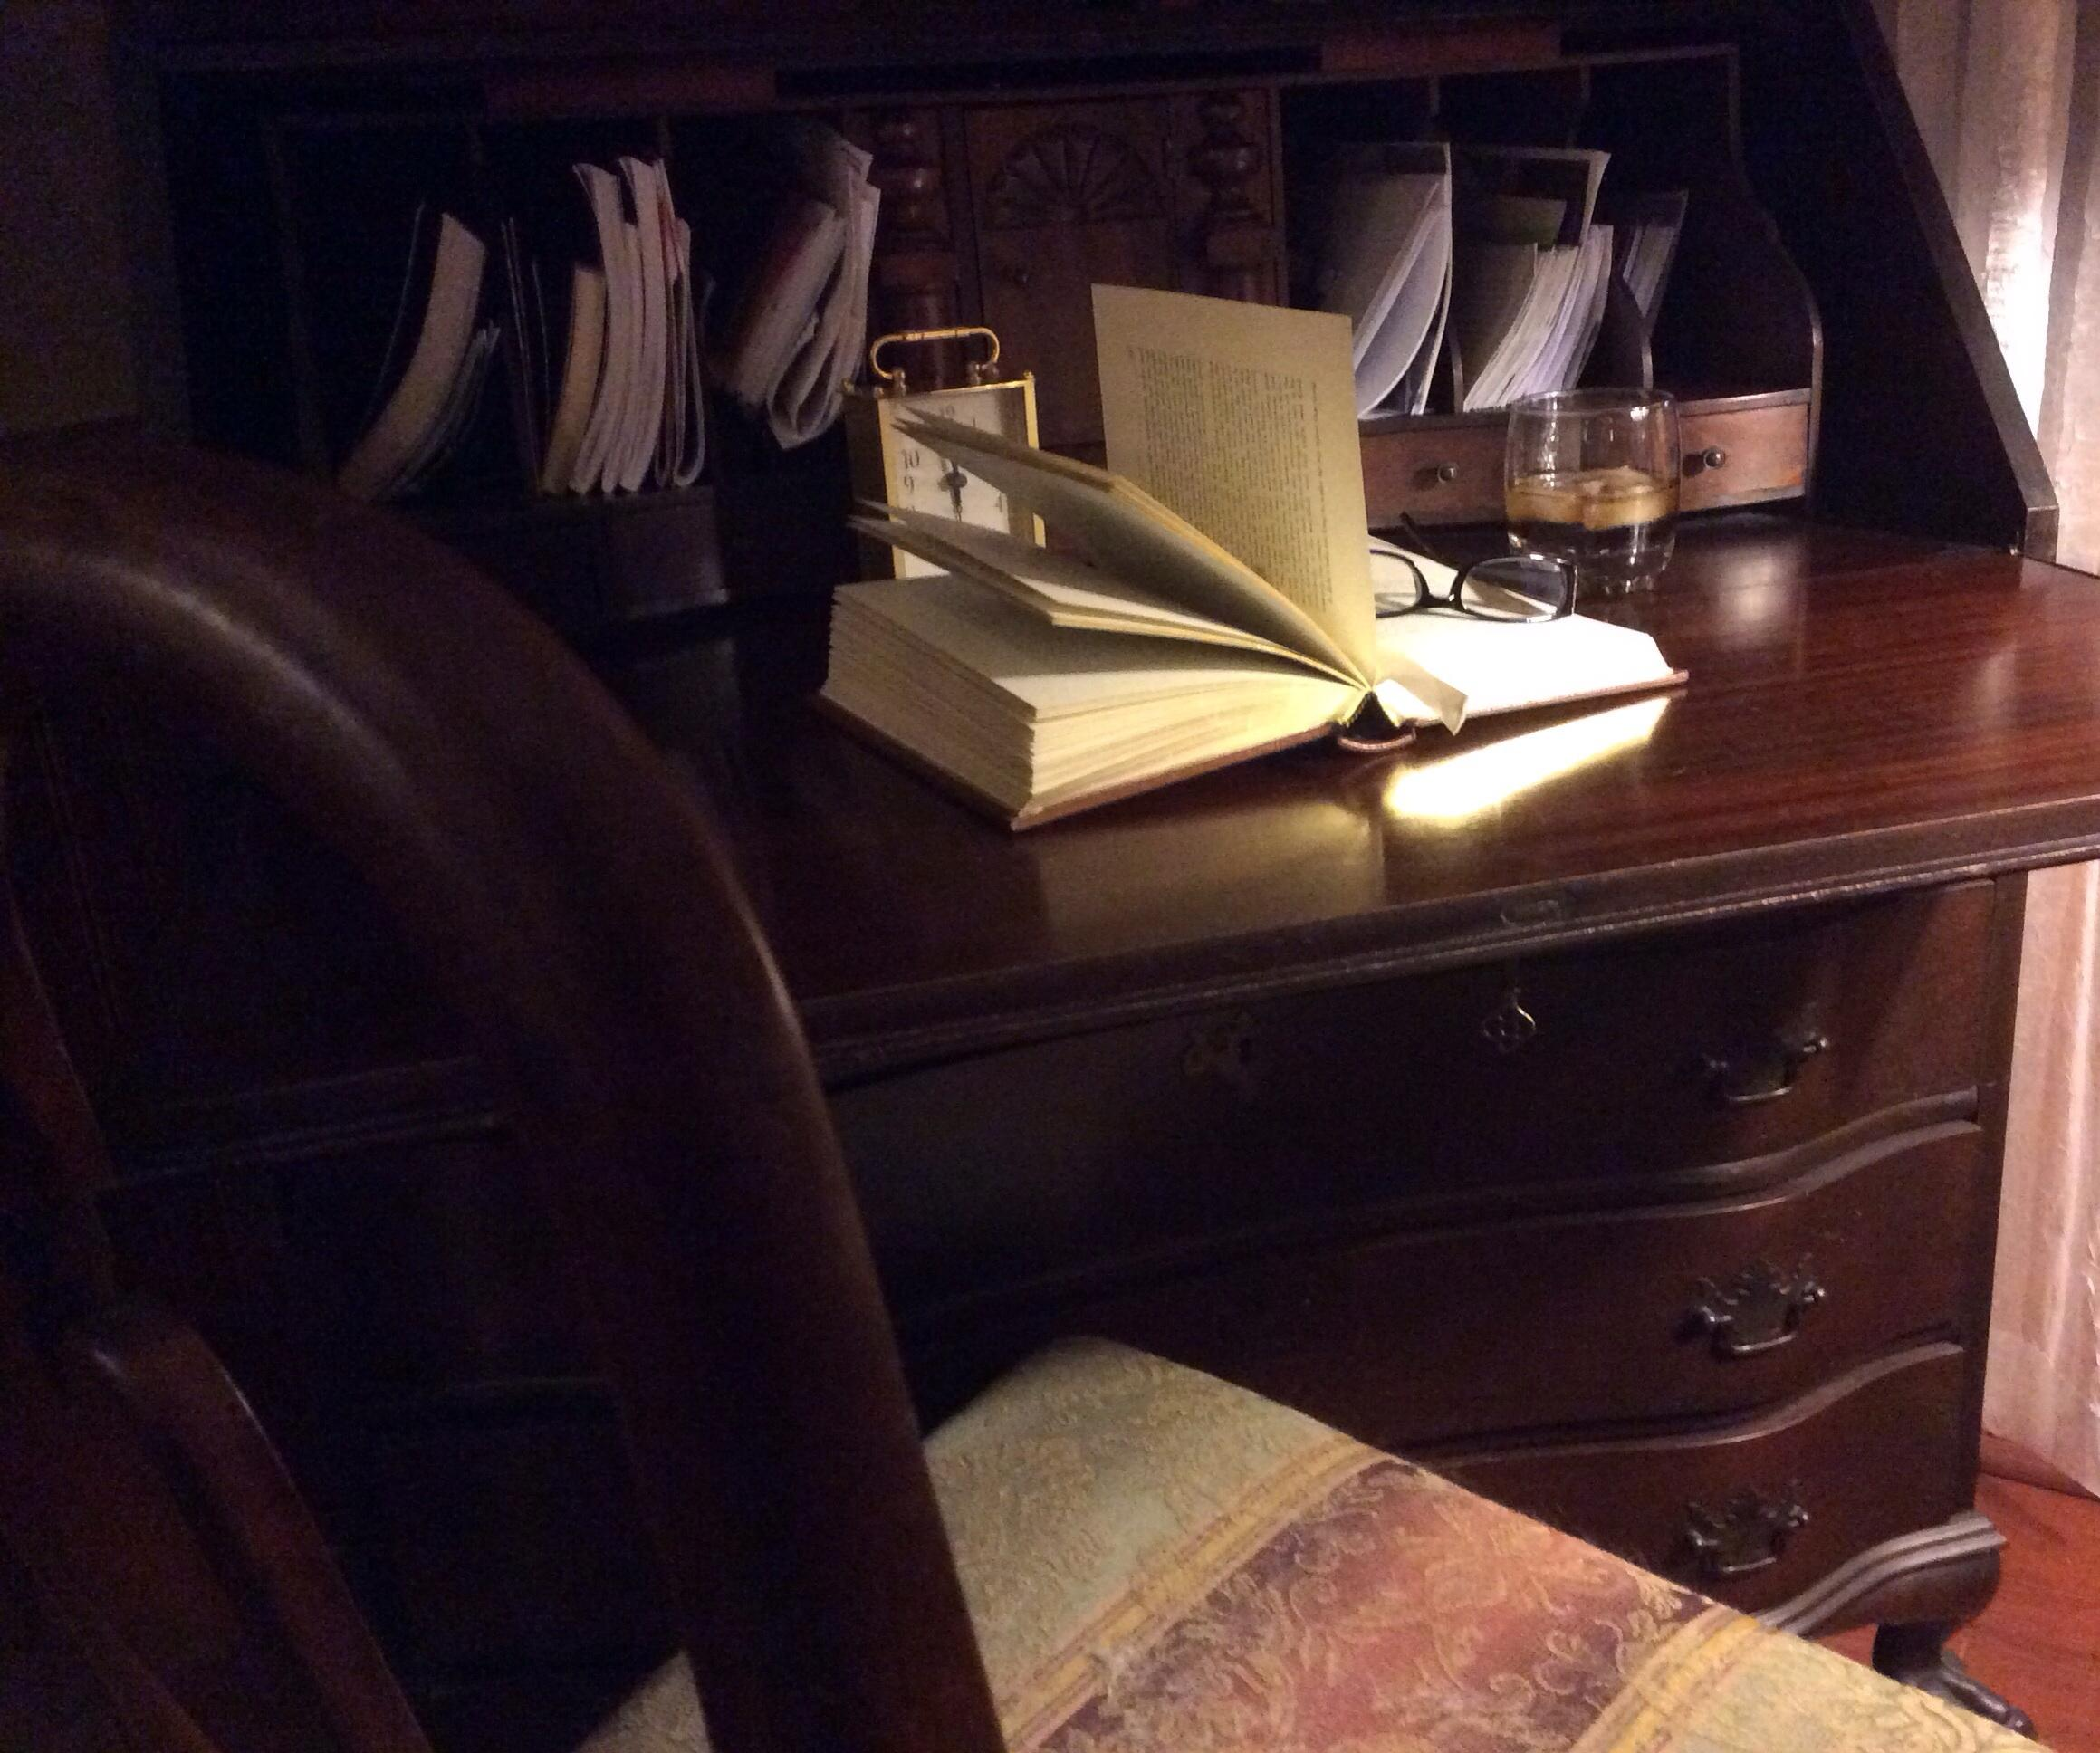 book on desk with glasses